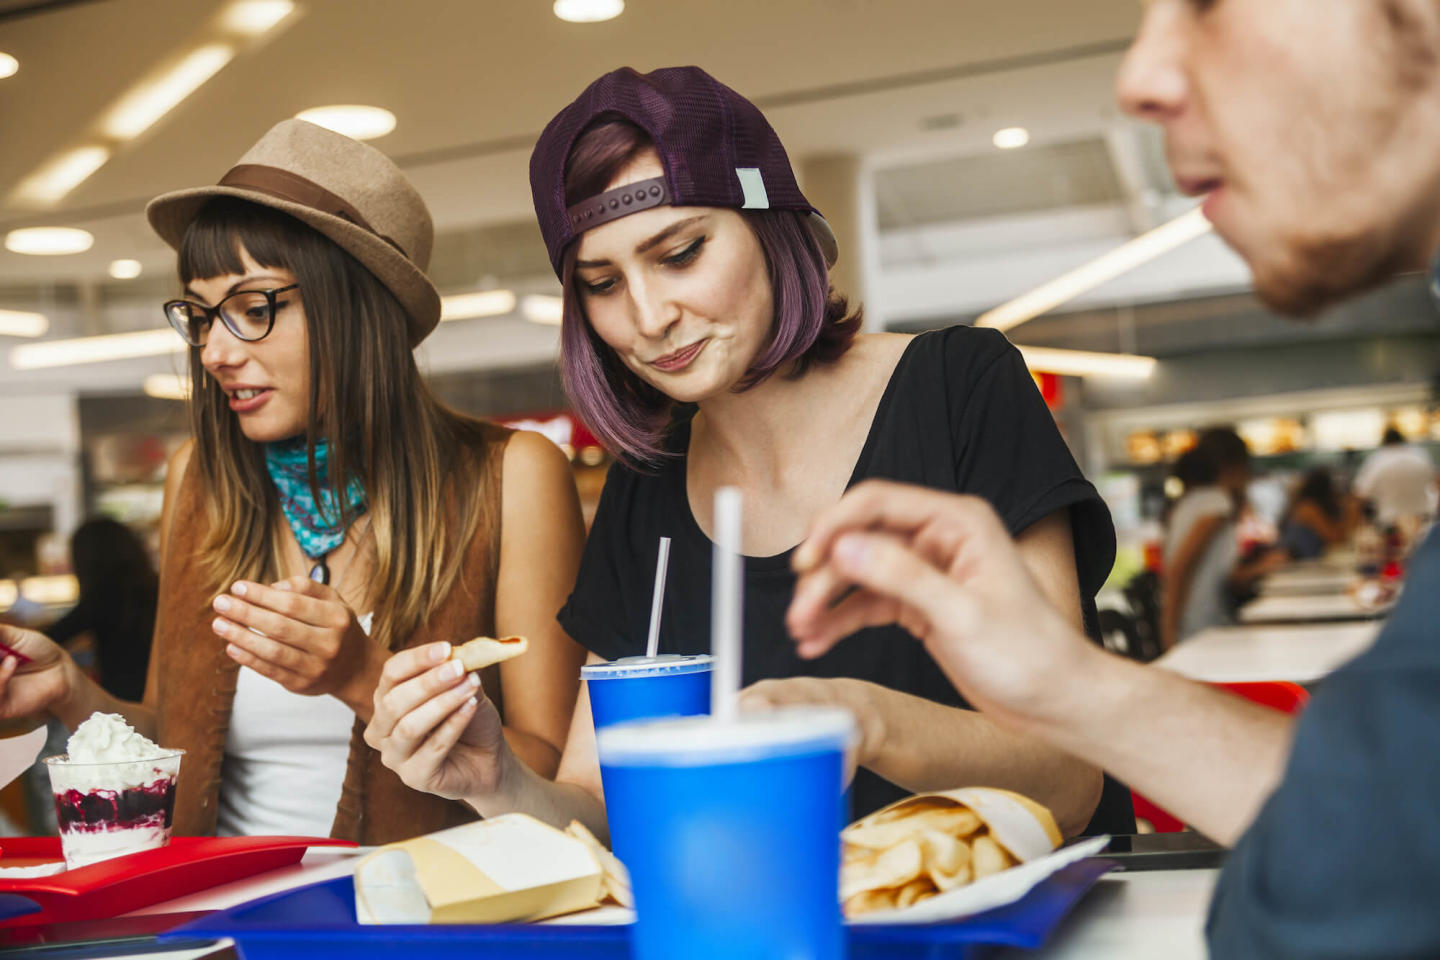 image of people eating at a foodcourt